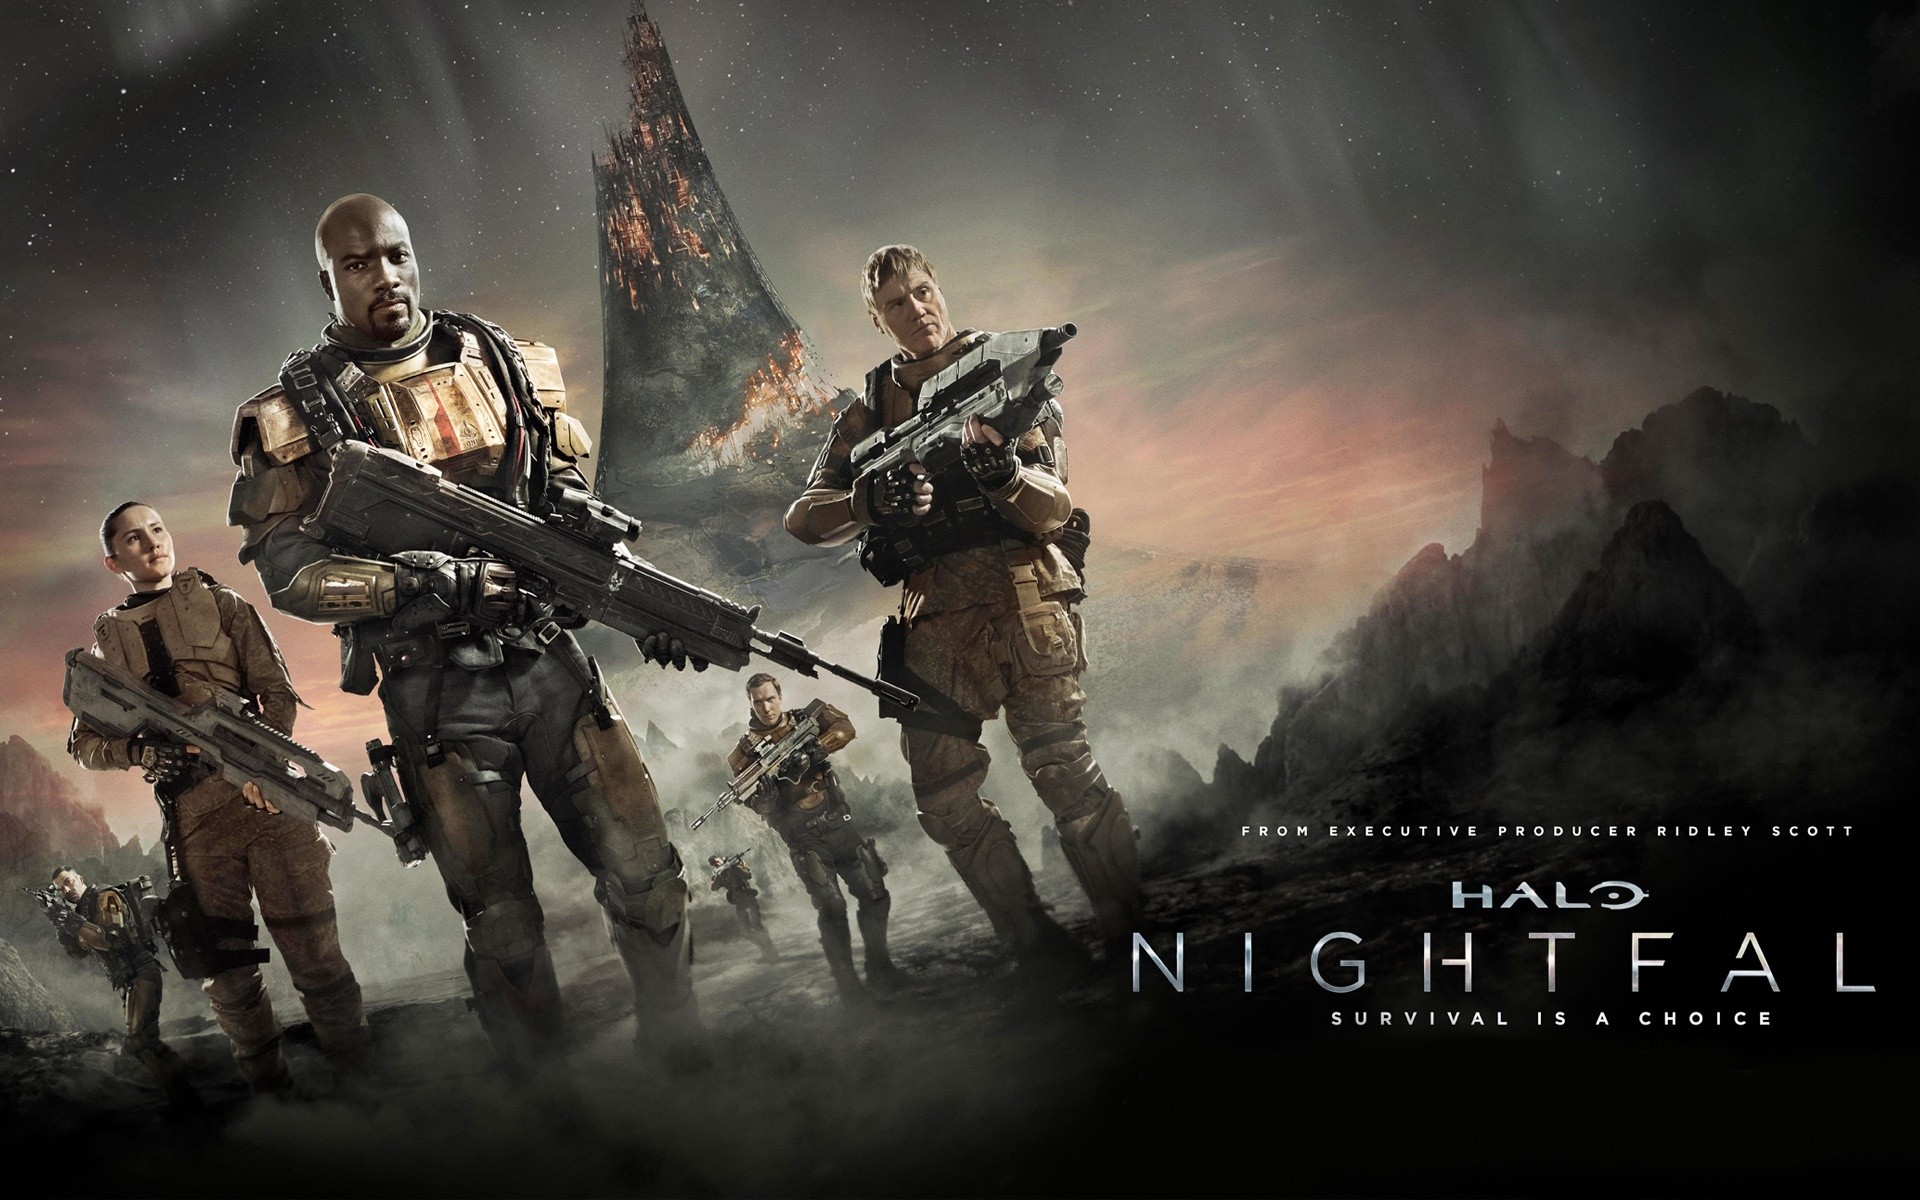 Halo Nightfall Tv Series